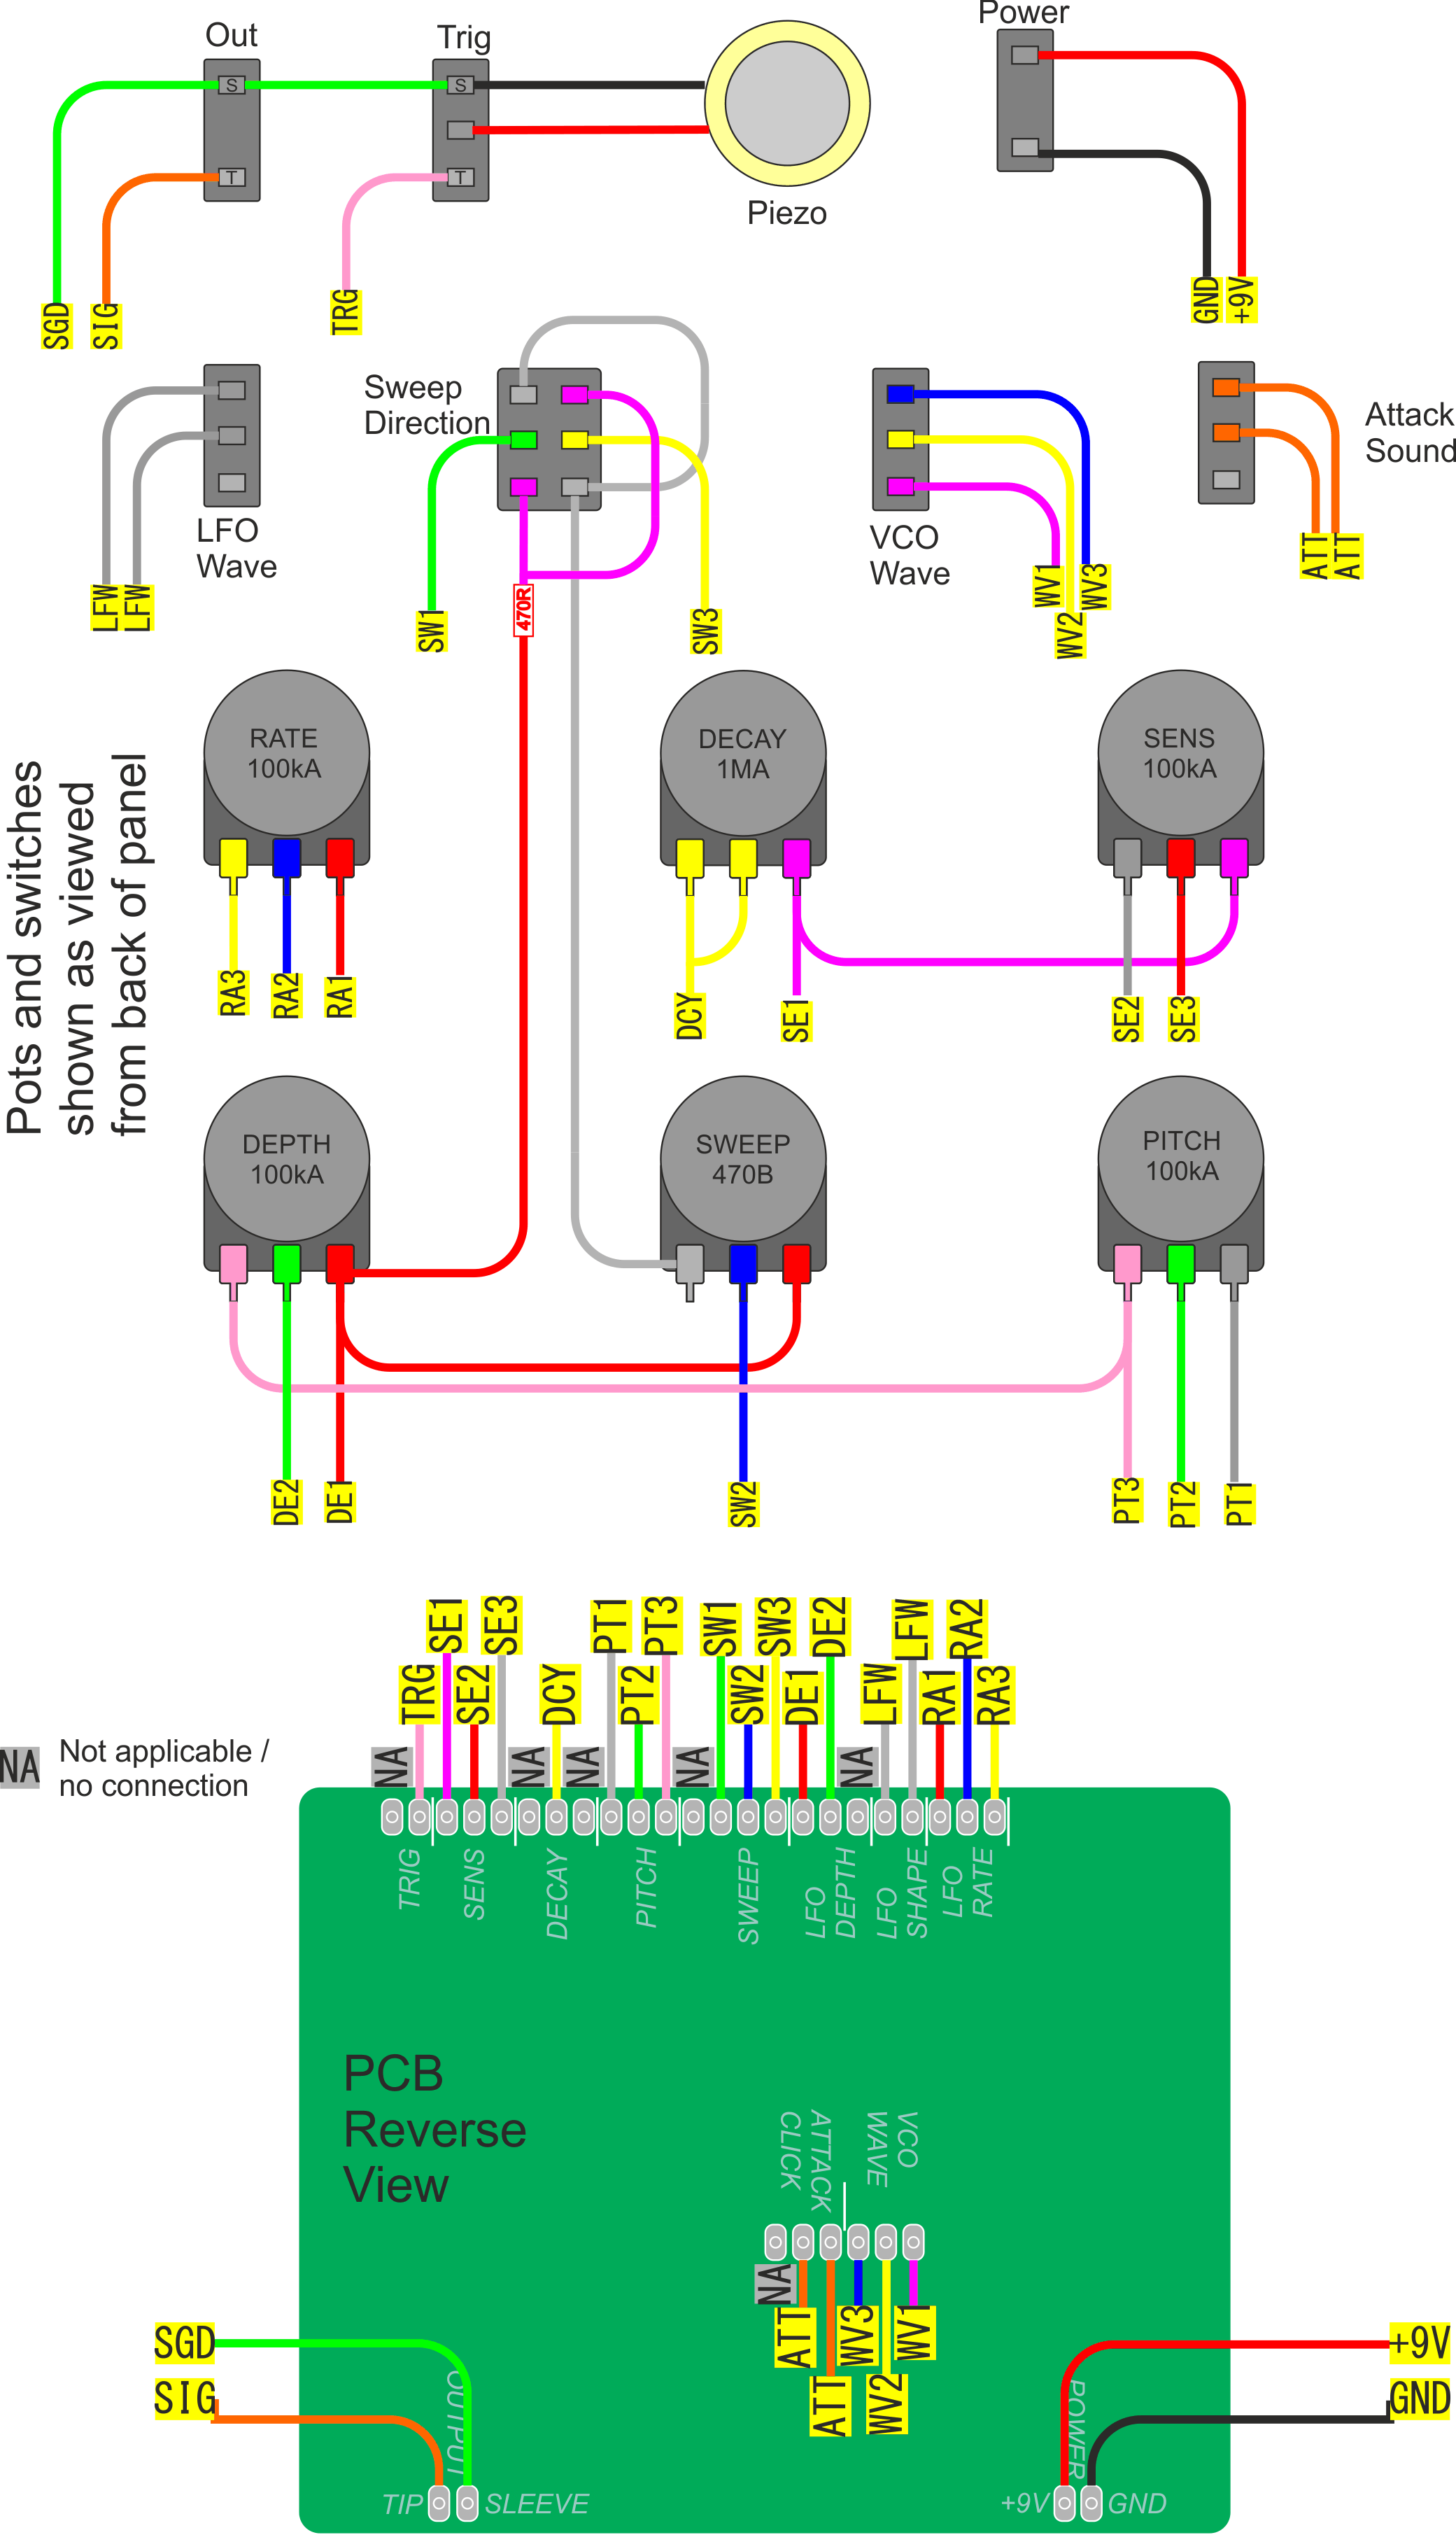 Pclone2 Build Here Is The Wiring Diagram Each Wire Labeled Where Goes Before We Start In Case You Need To Refer It Click